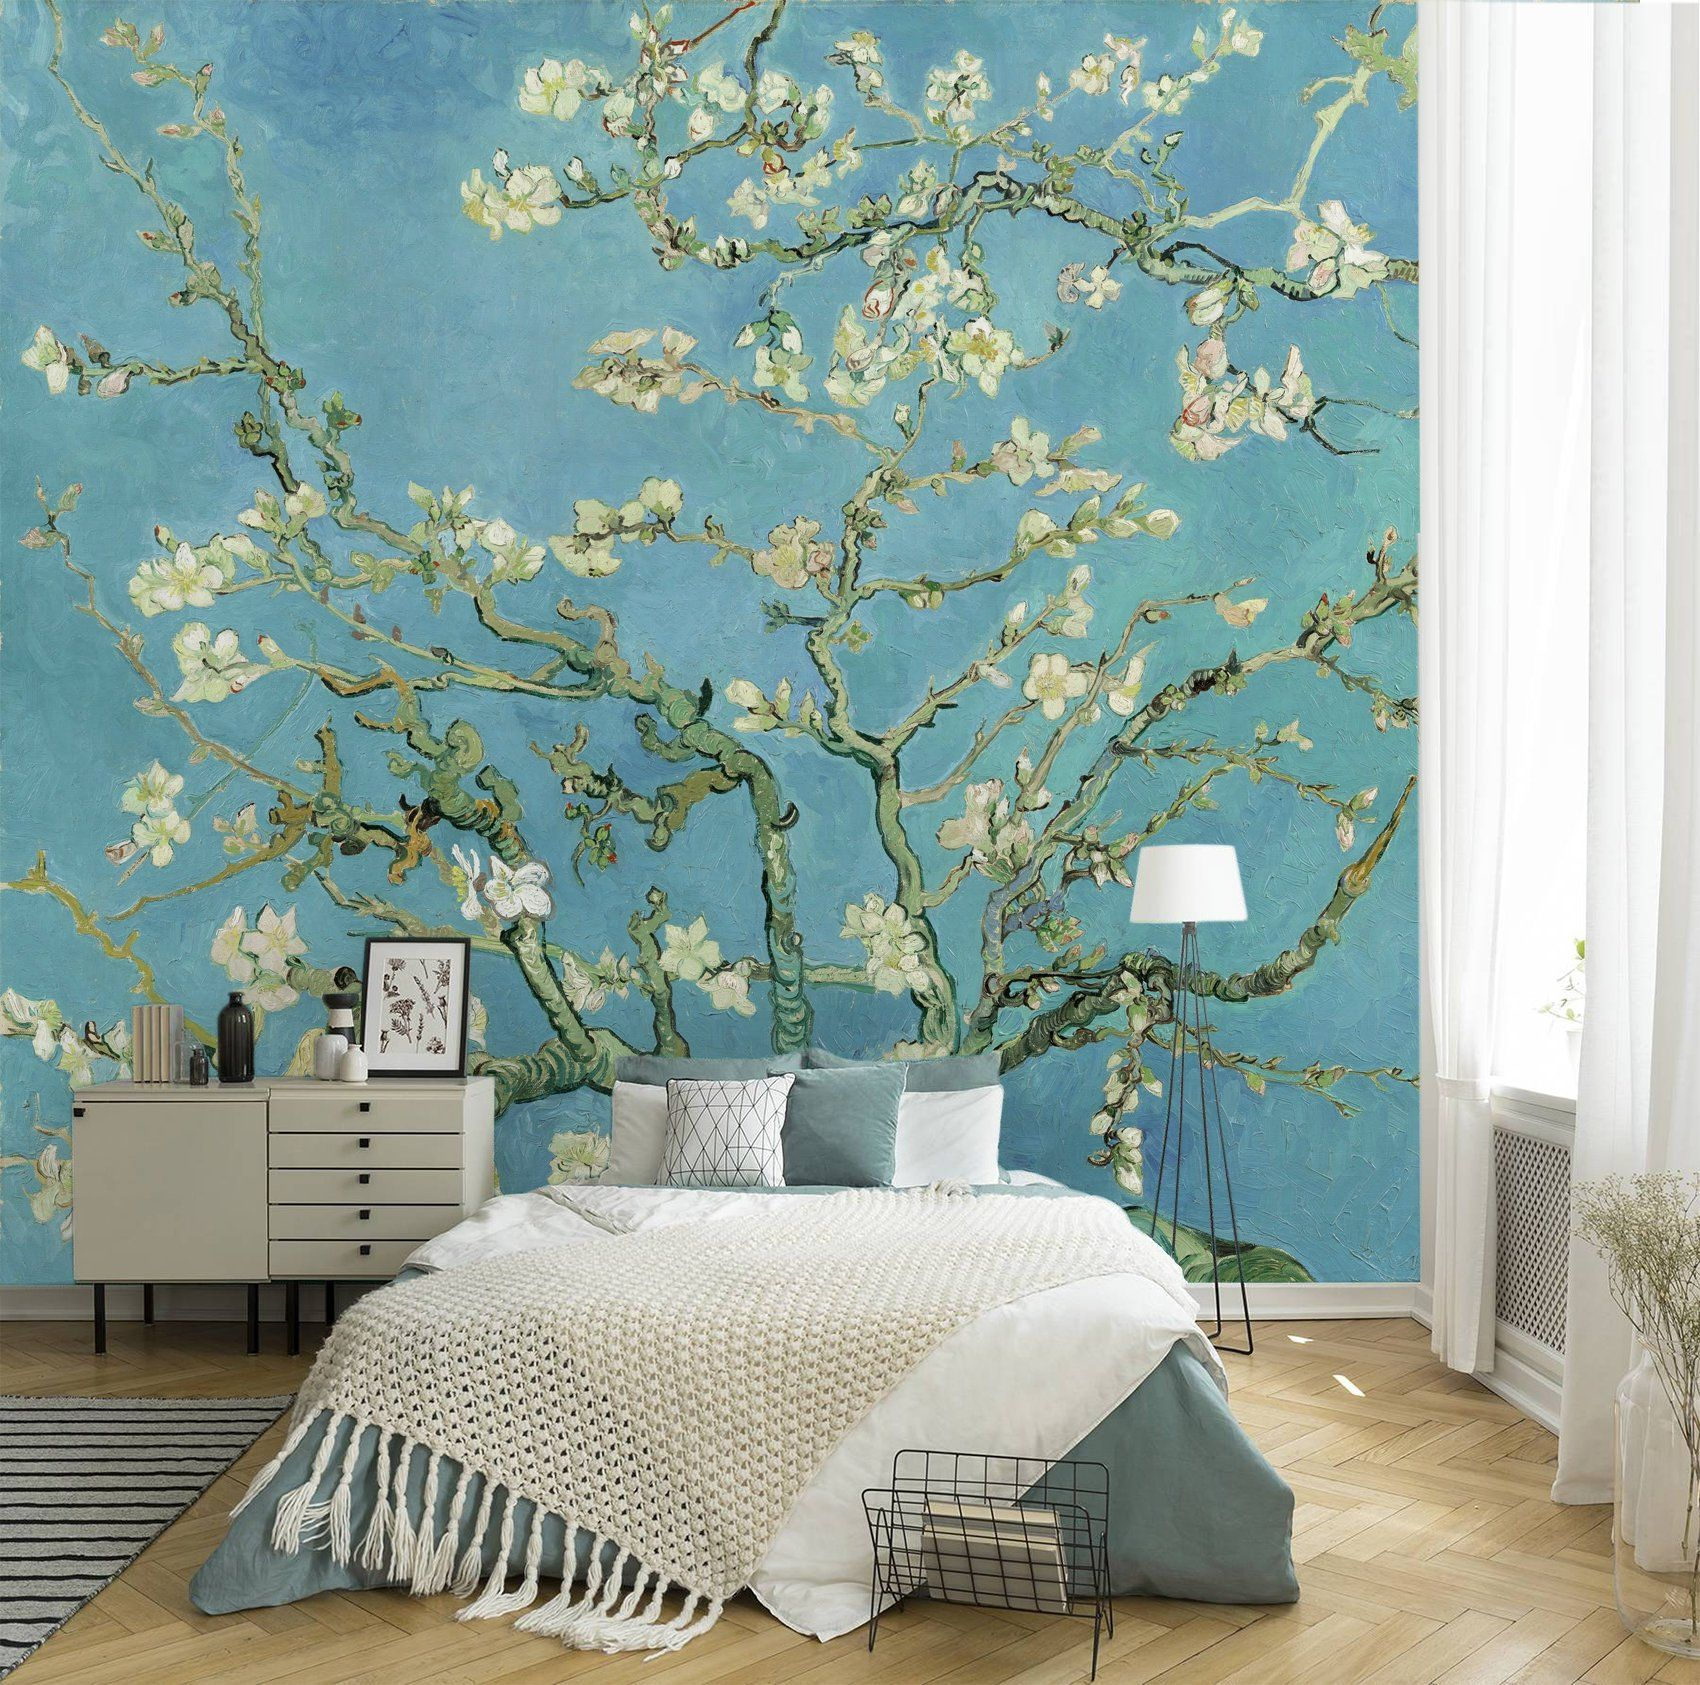 Almond blossom by Van Gogh wallpaper, peel and stick